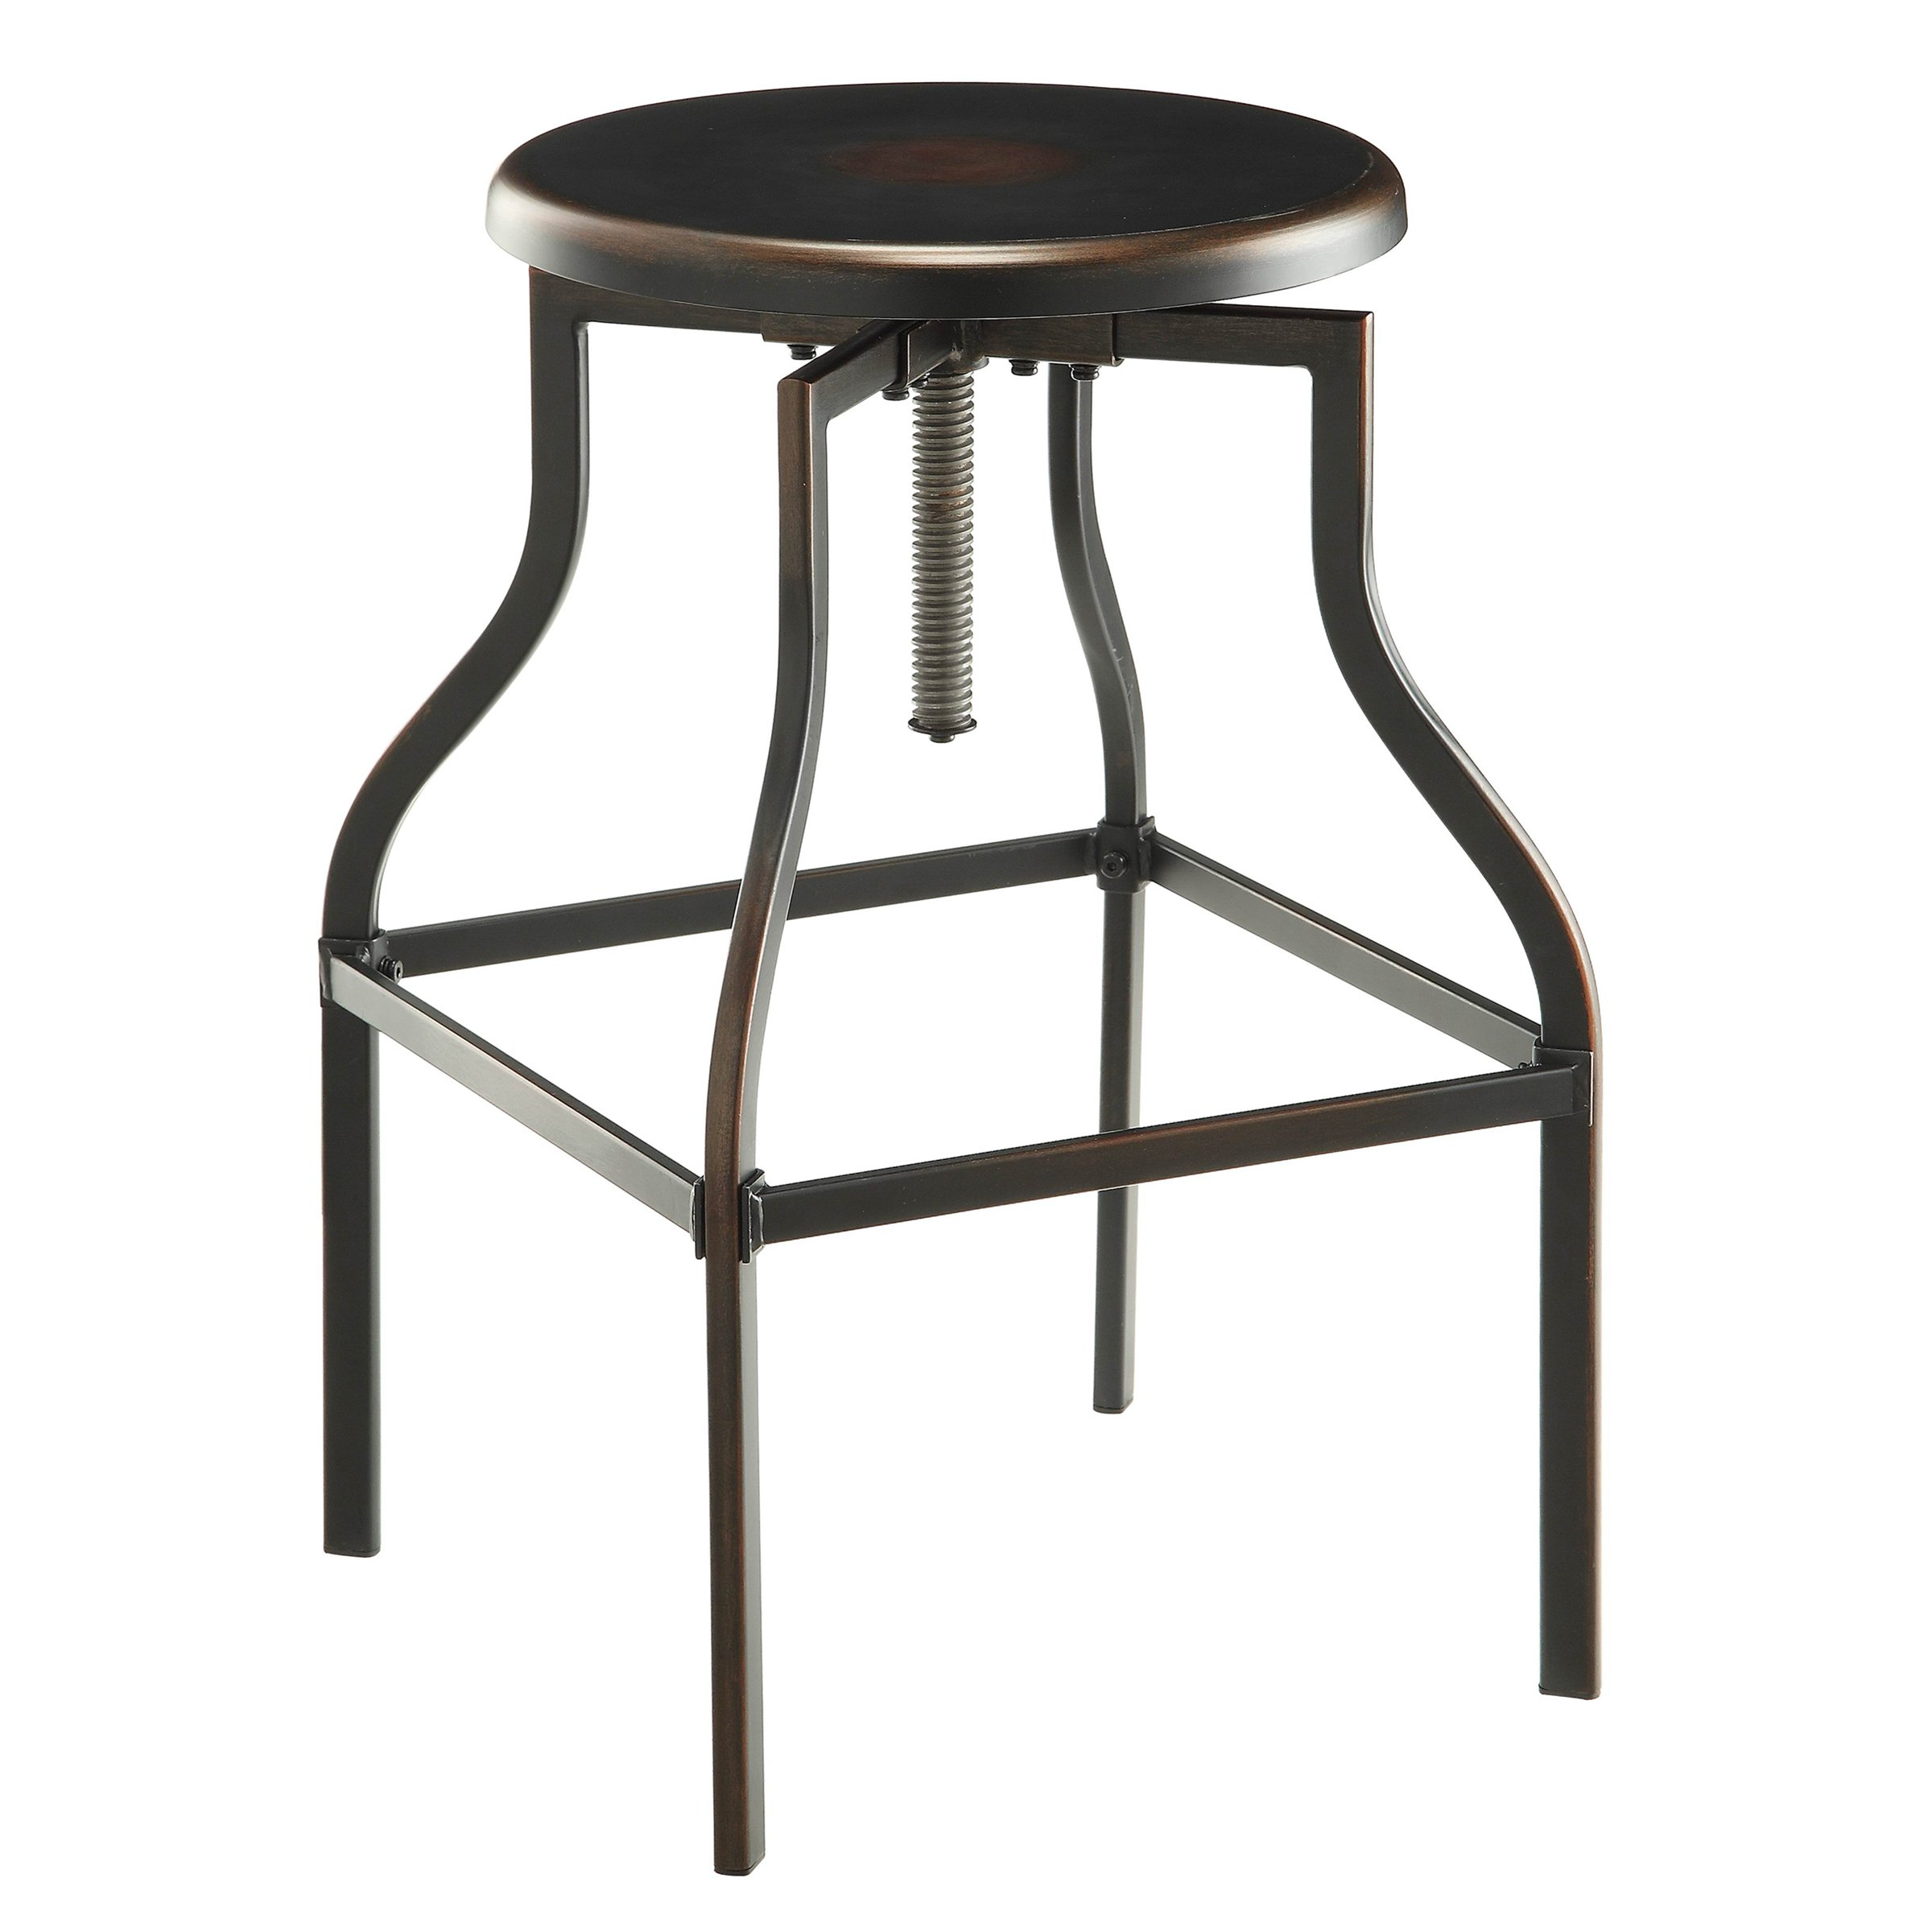 Carolina Chair and Table Colby Metal Adjustable Stool, Antique Copper